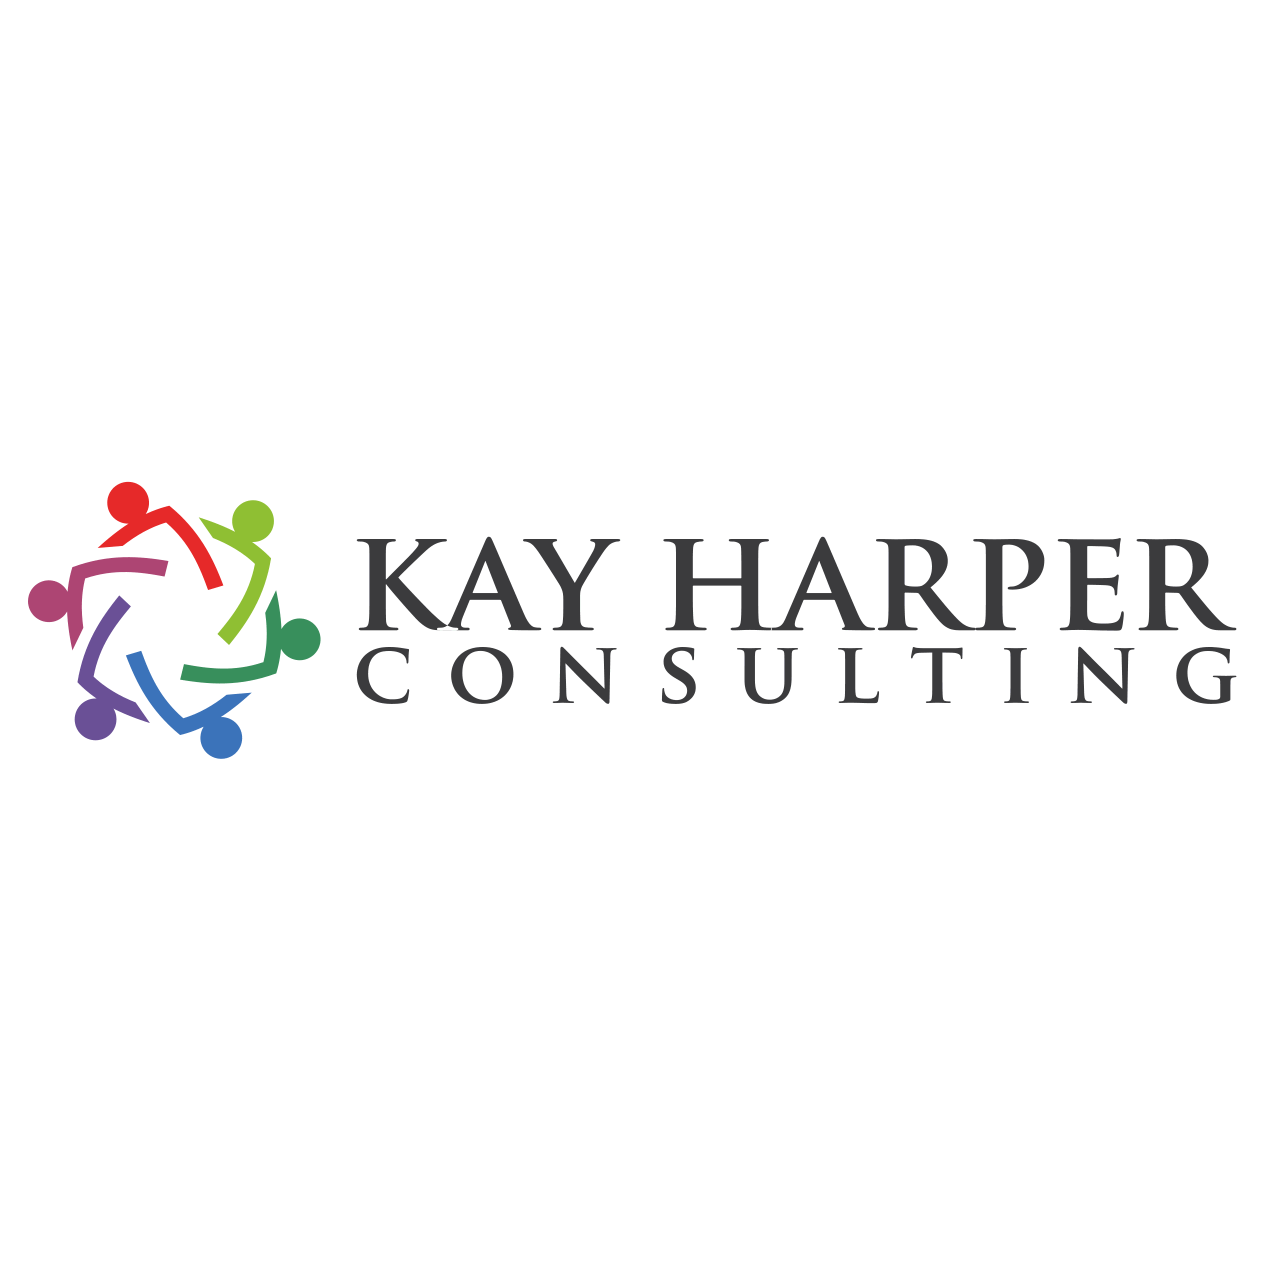 Kay Harper Consulting